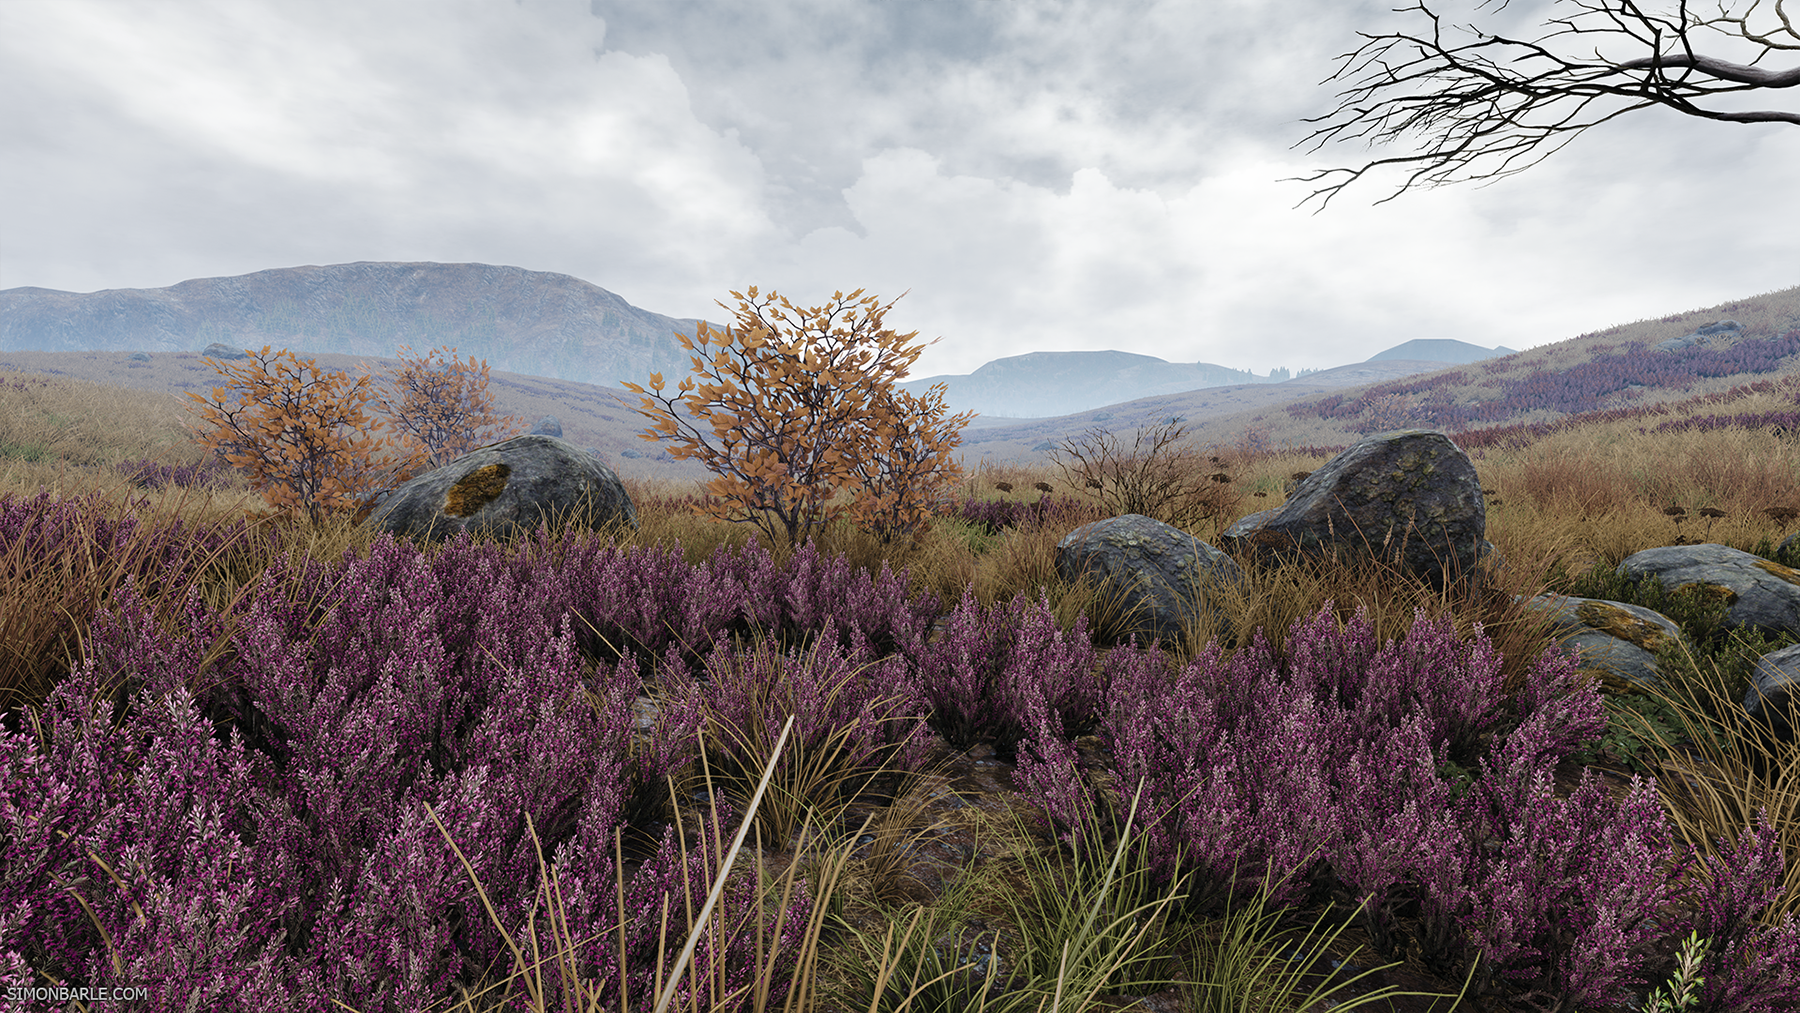 Highlands_03.png